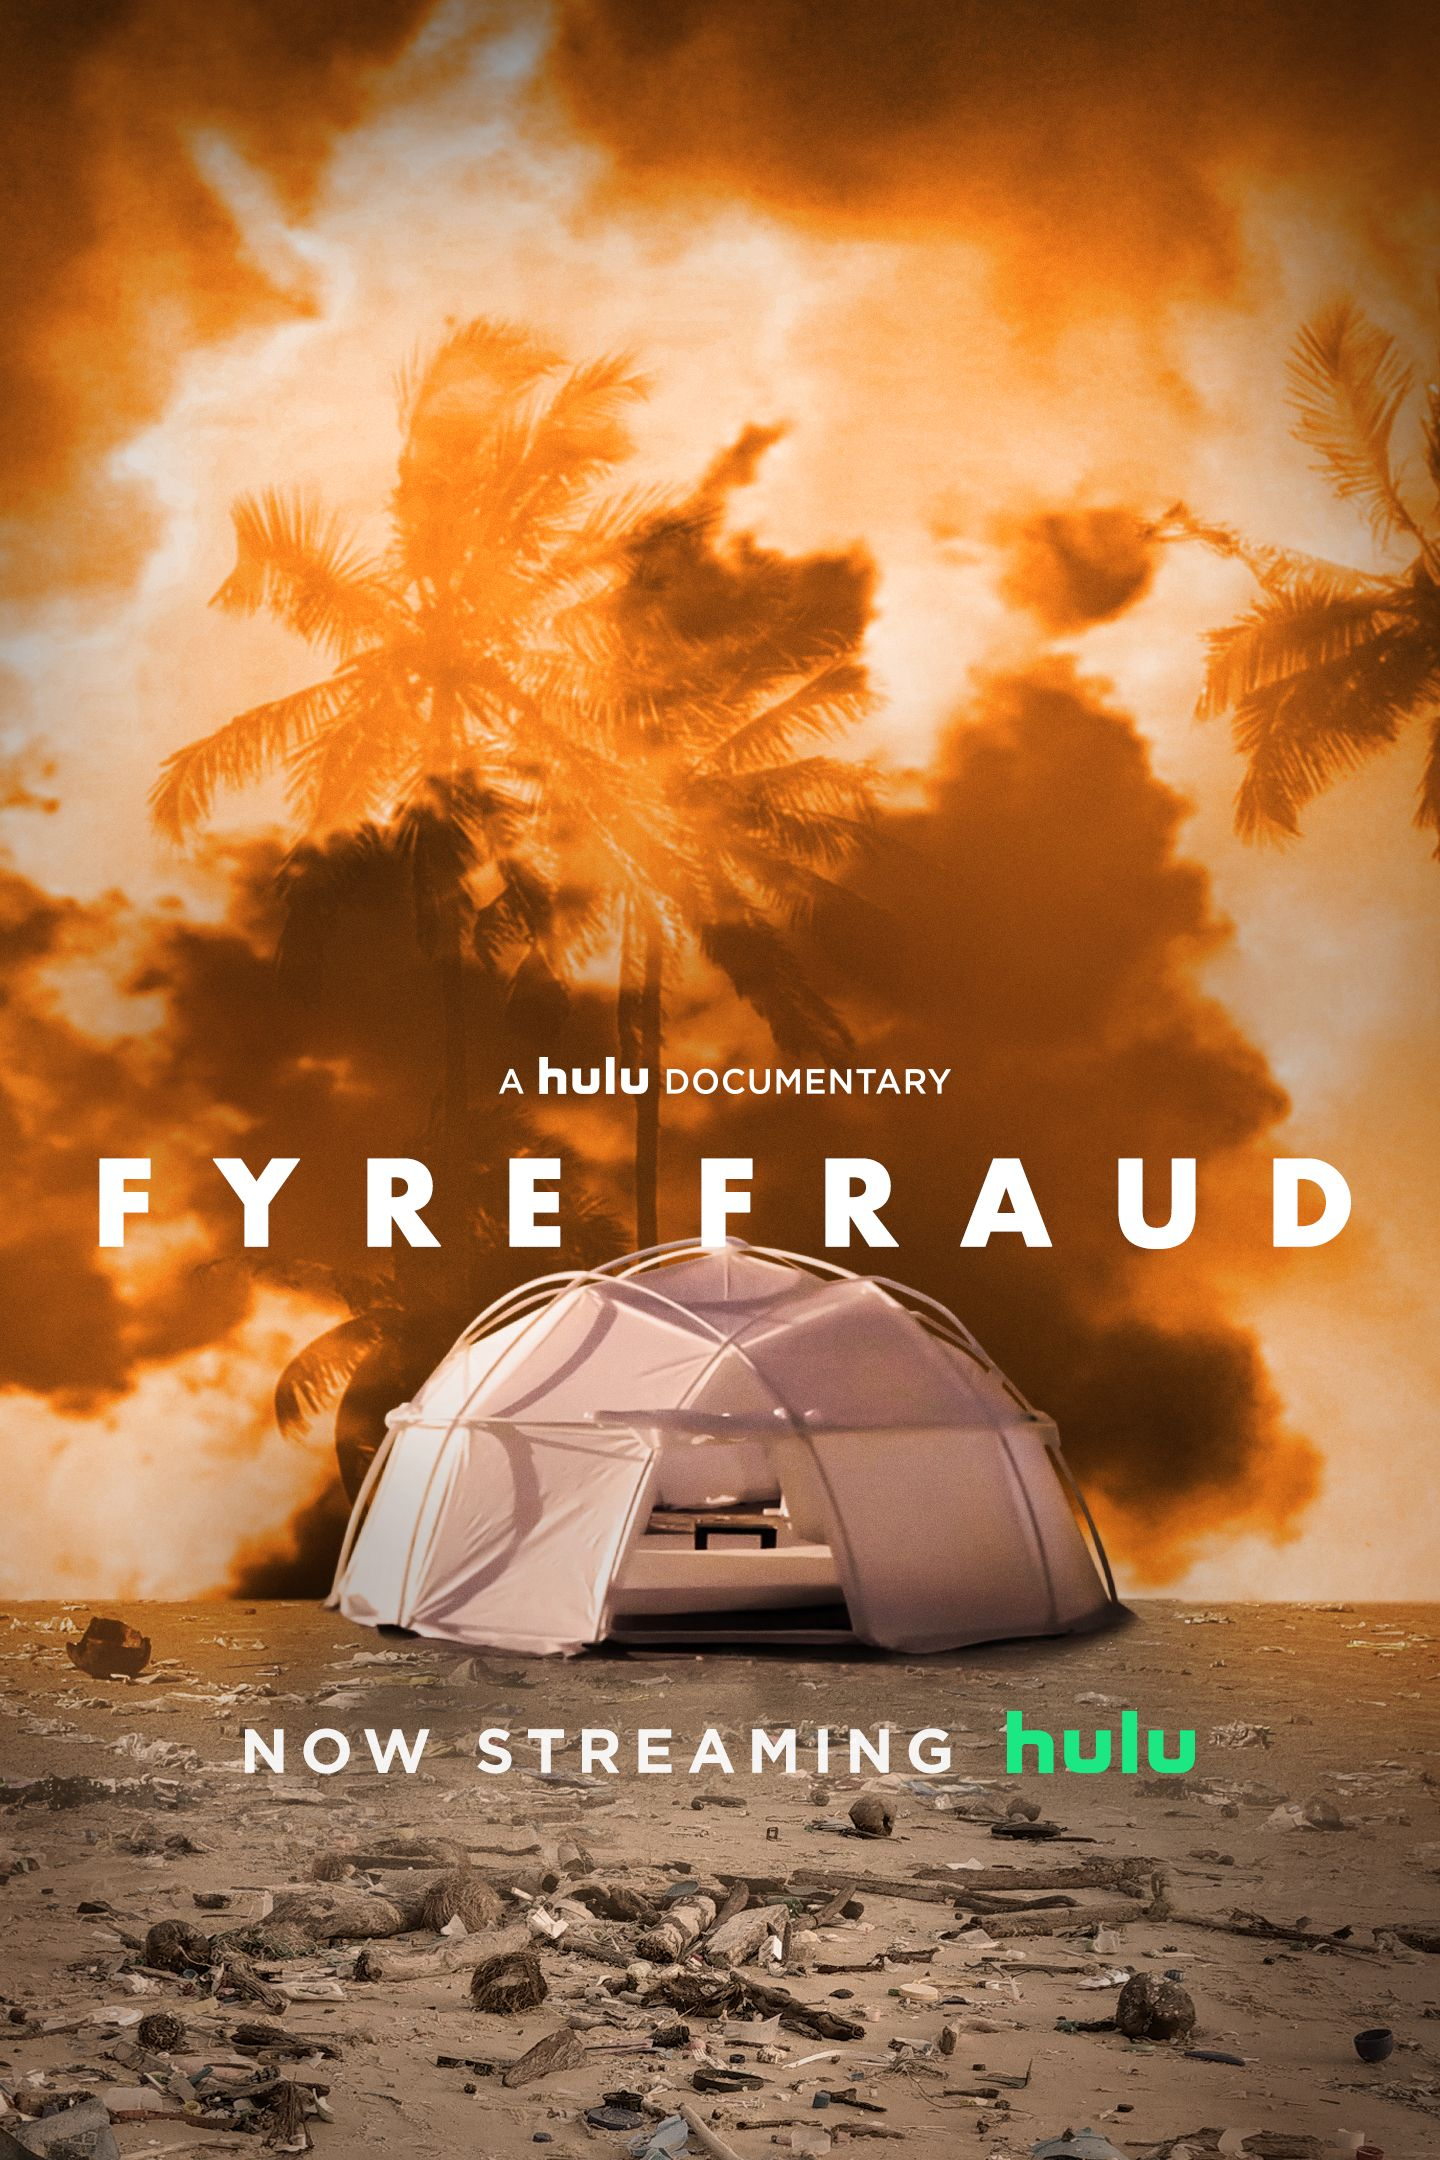 Fyre Fraud Review: Hulu's Documentary Tone Is Too Glib | Collider